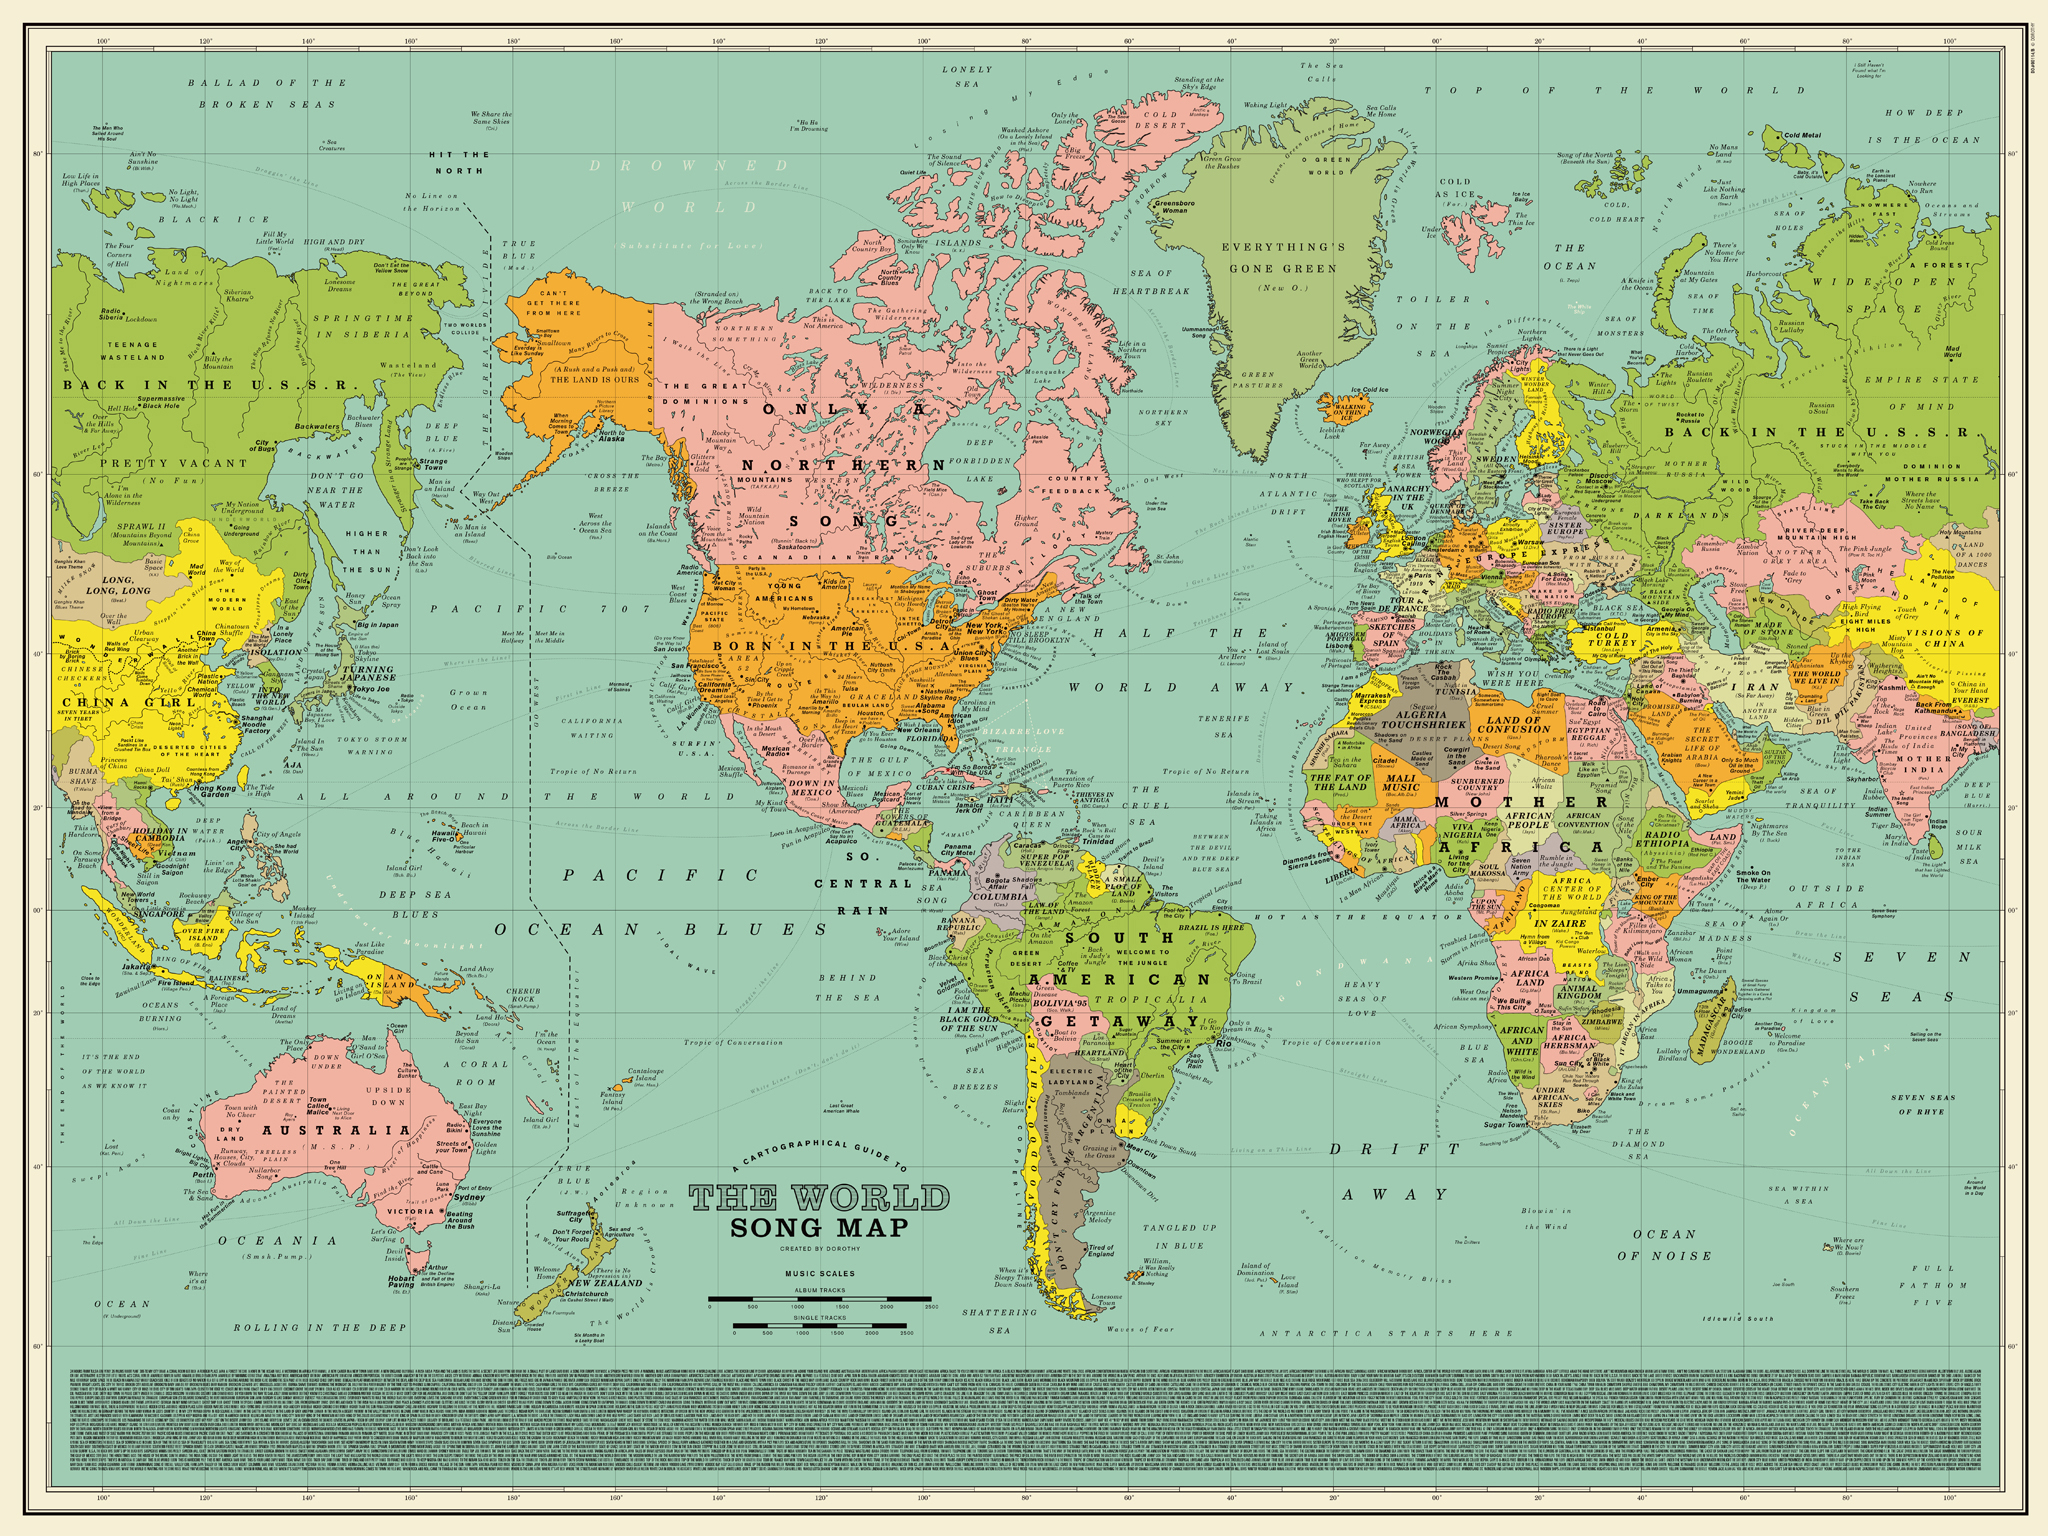 World Song Map A Detailed Poster That Imagines The World Map Made - Would map